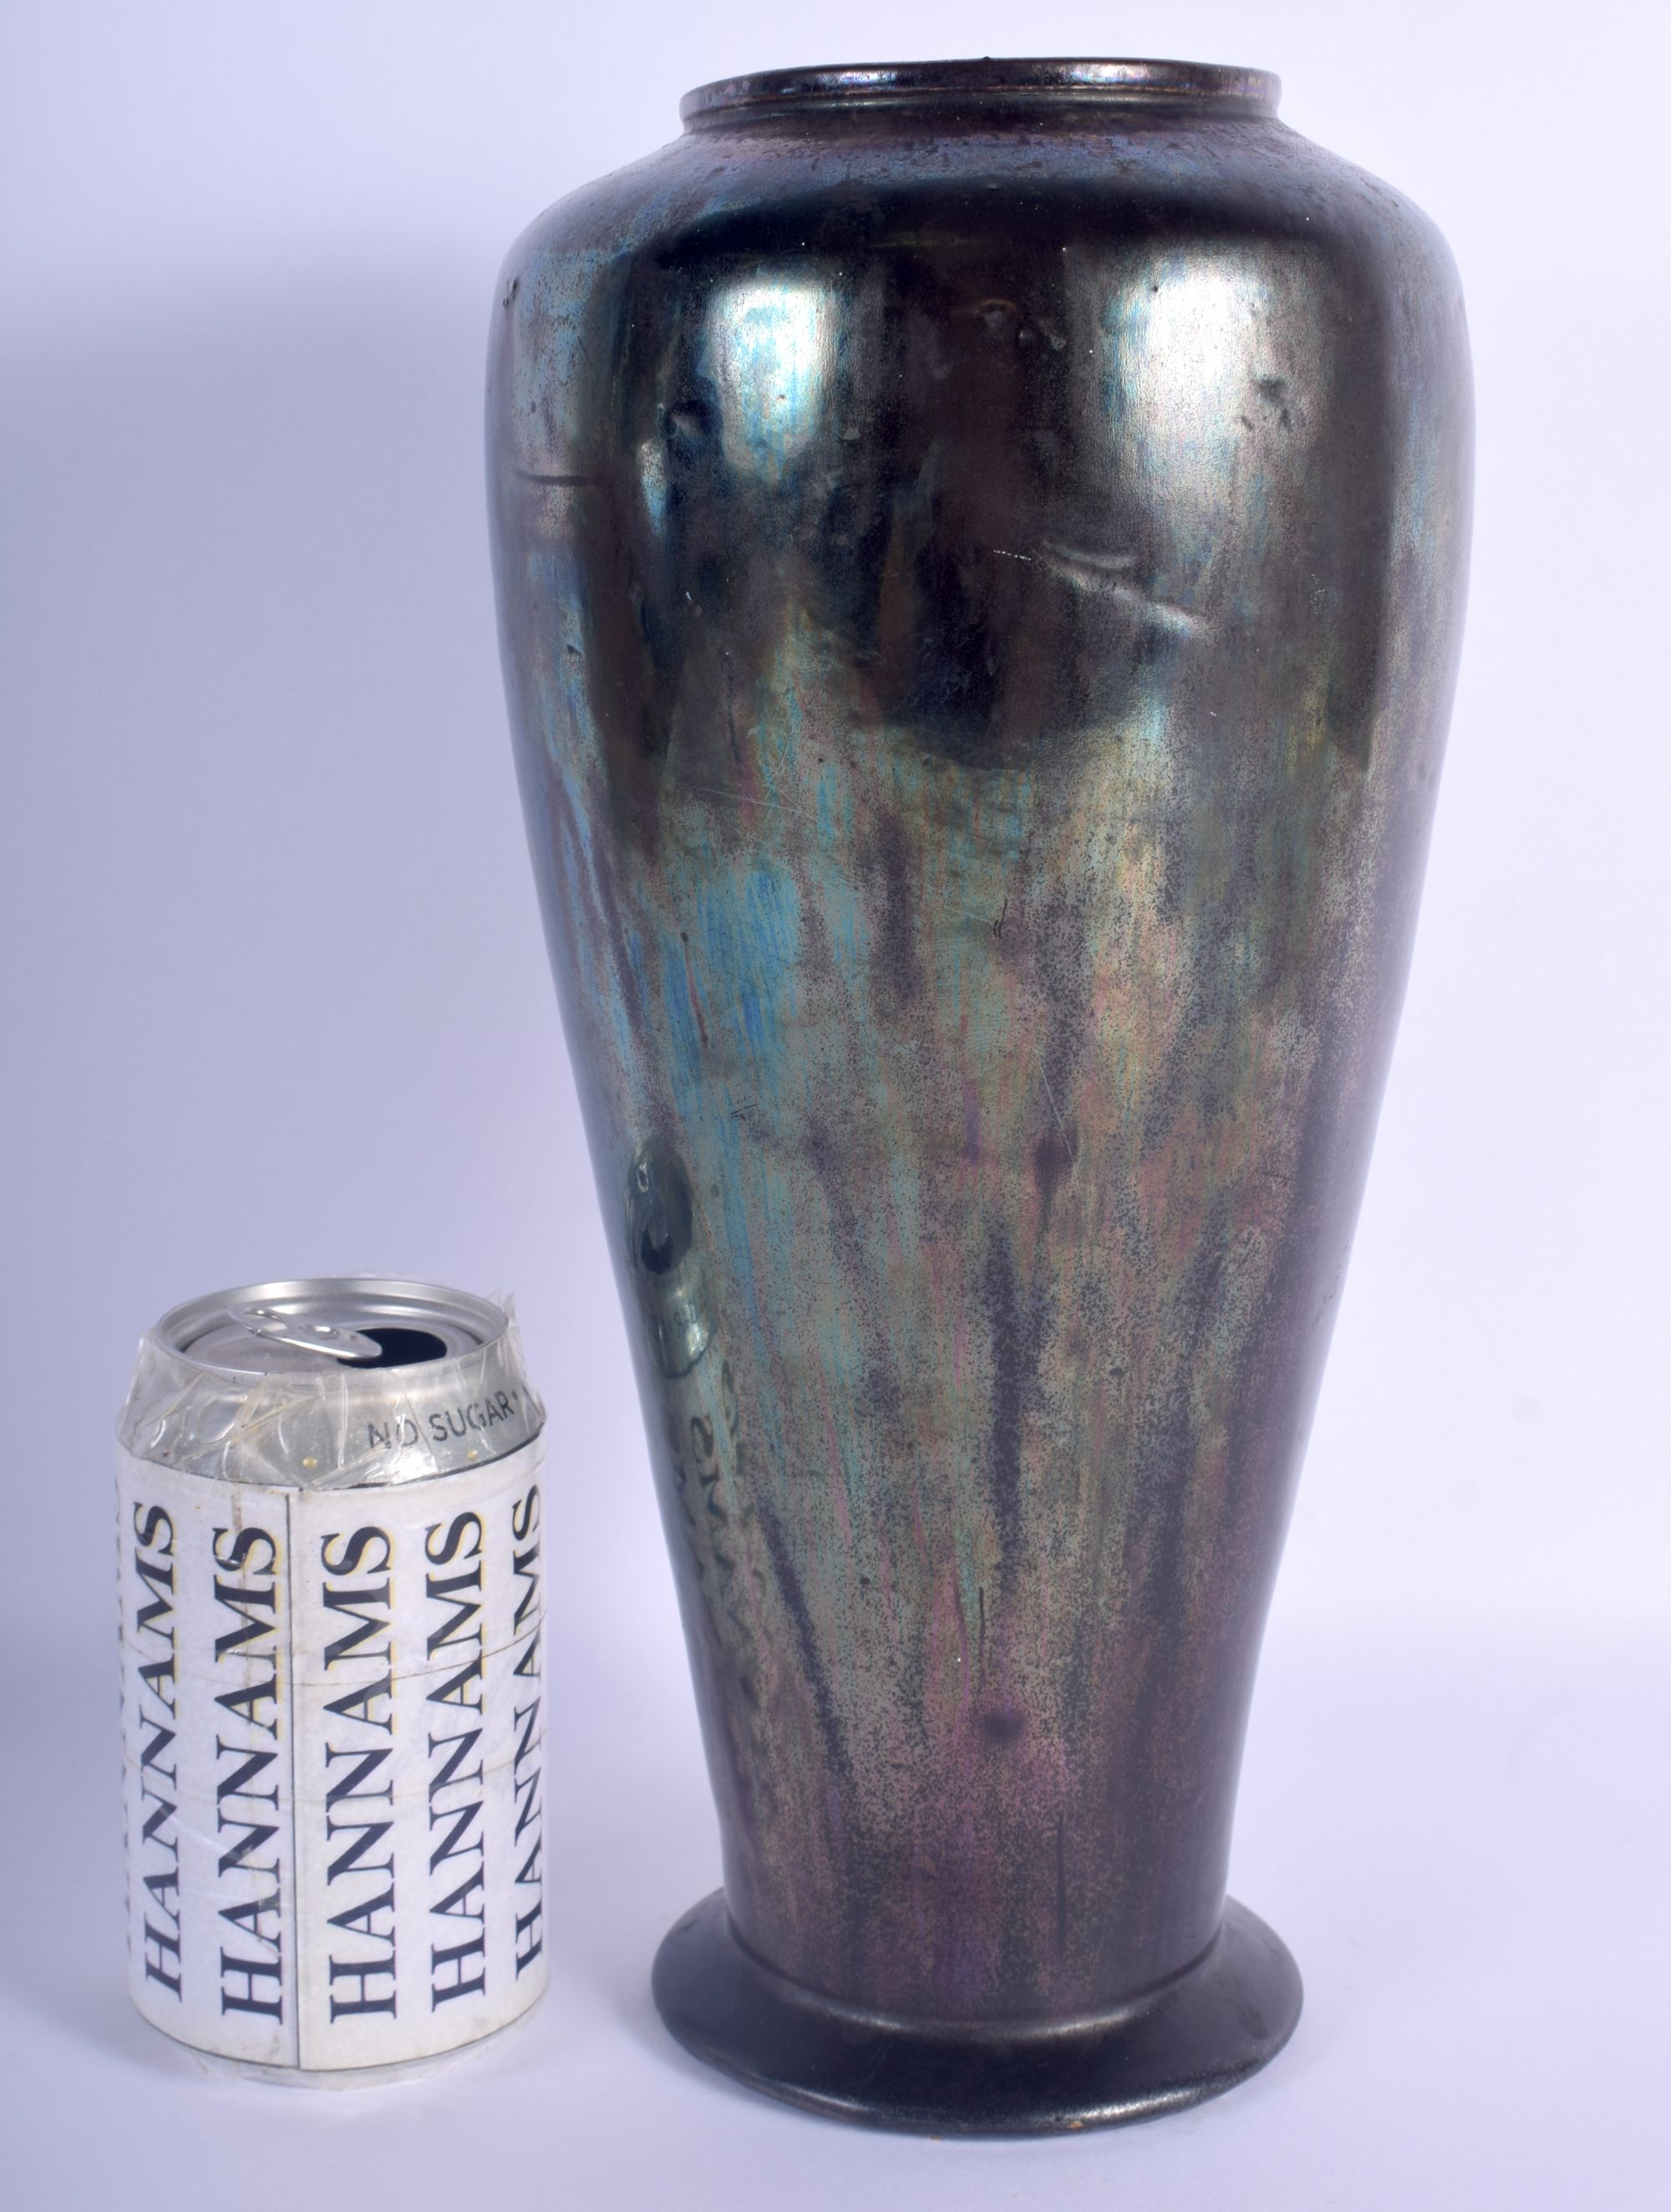 AN UNUSUAL EARLY 20TH CENTURY IRIDESCENT FAVRILLE TYPE POTTERY VASE in the manner of Tiffany & Co. 3